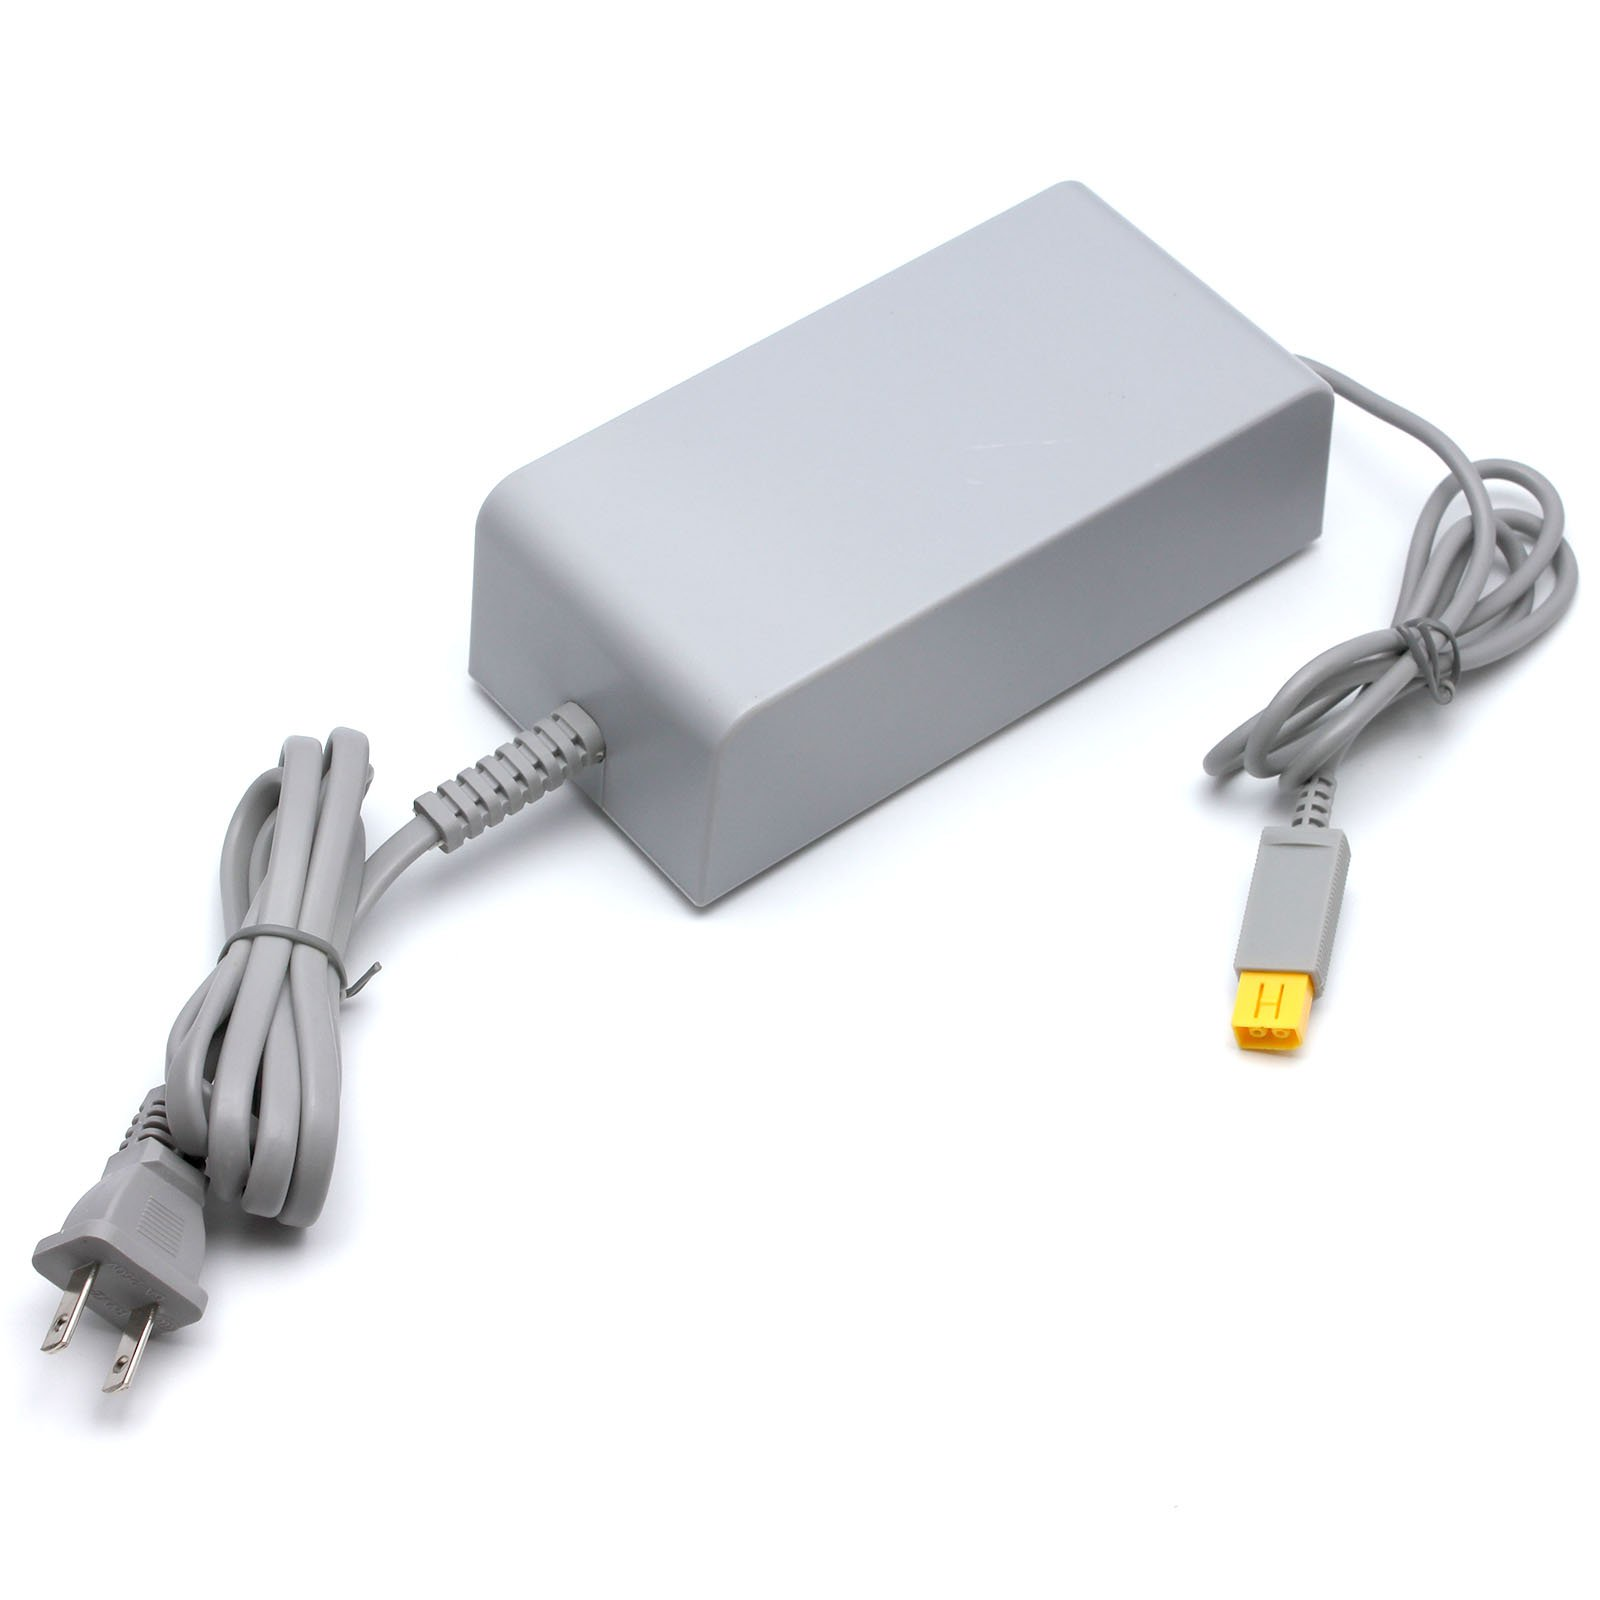 Nulink™ AC Power Support Adapter Unit Replacement with Wall Power Cord for Nintendo Wii U Console